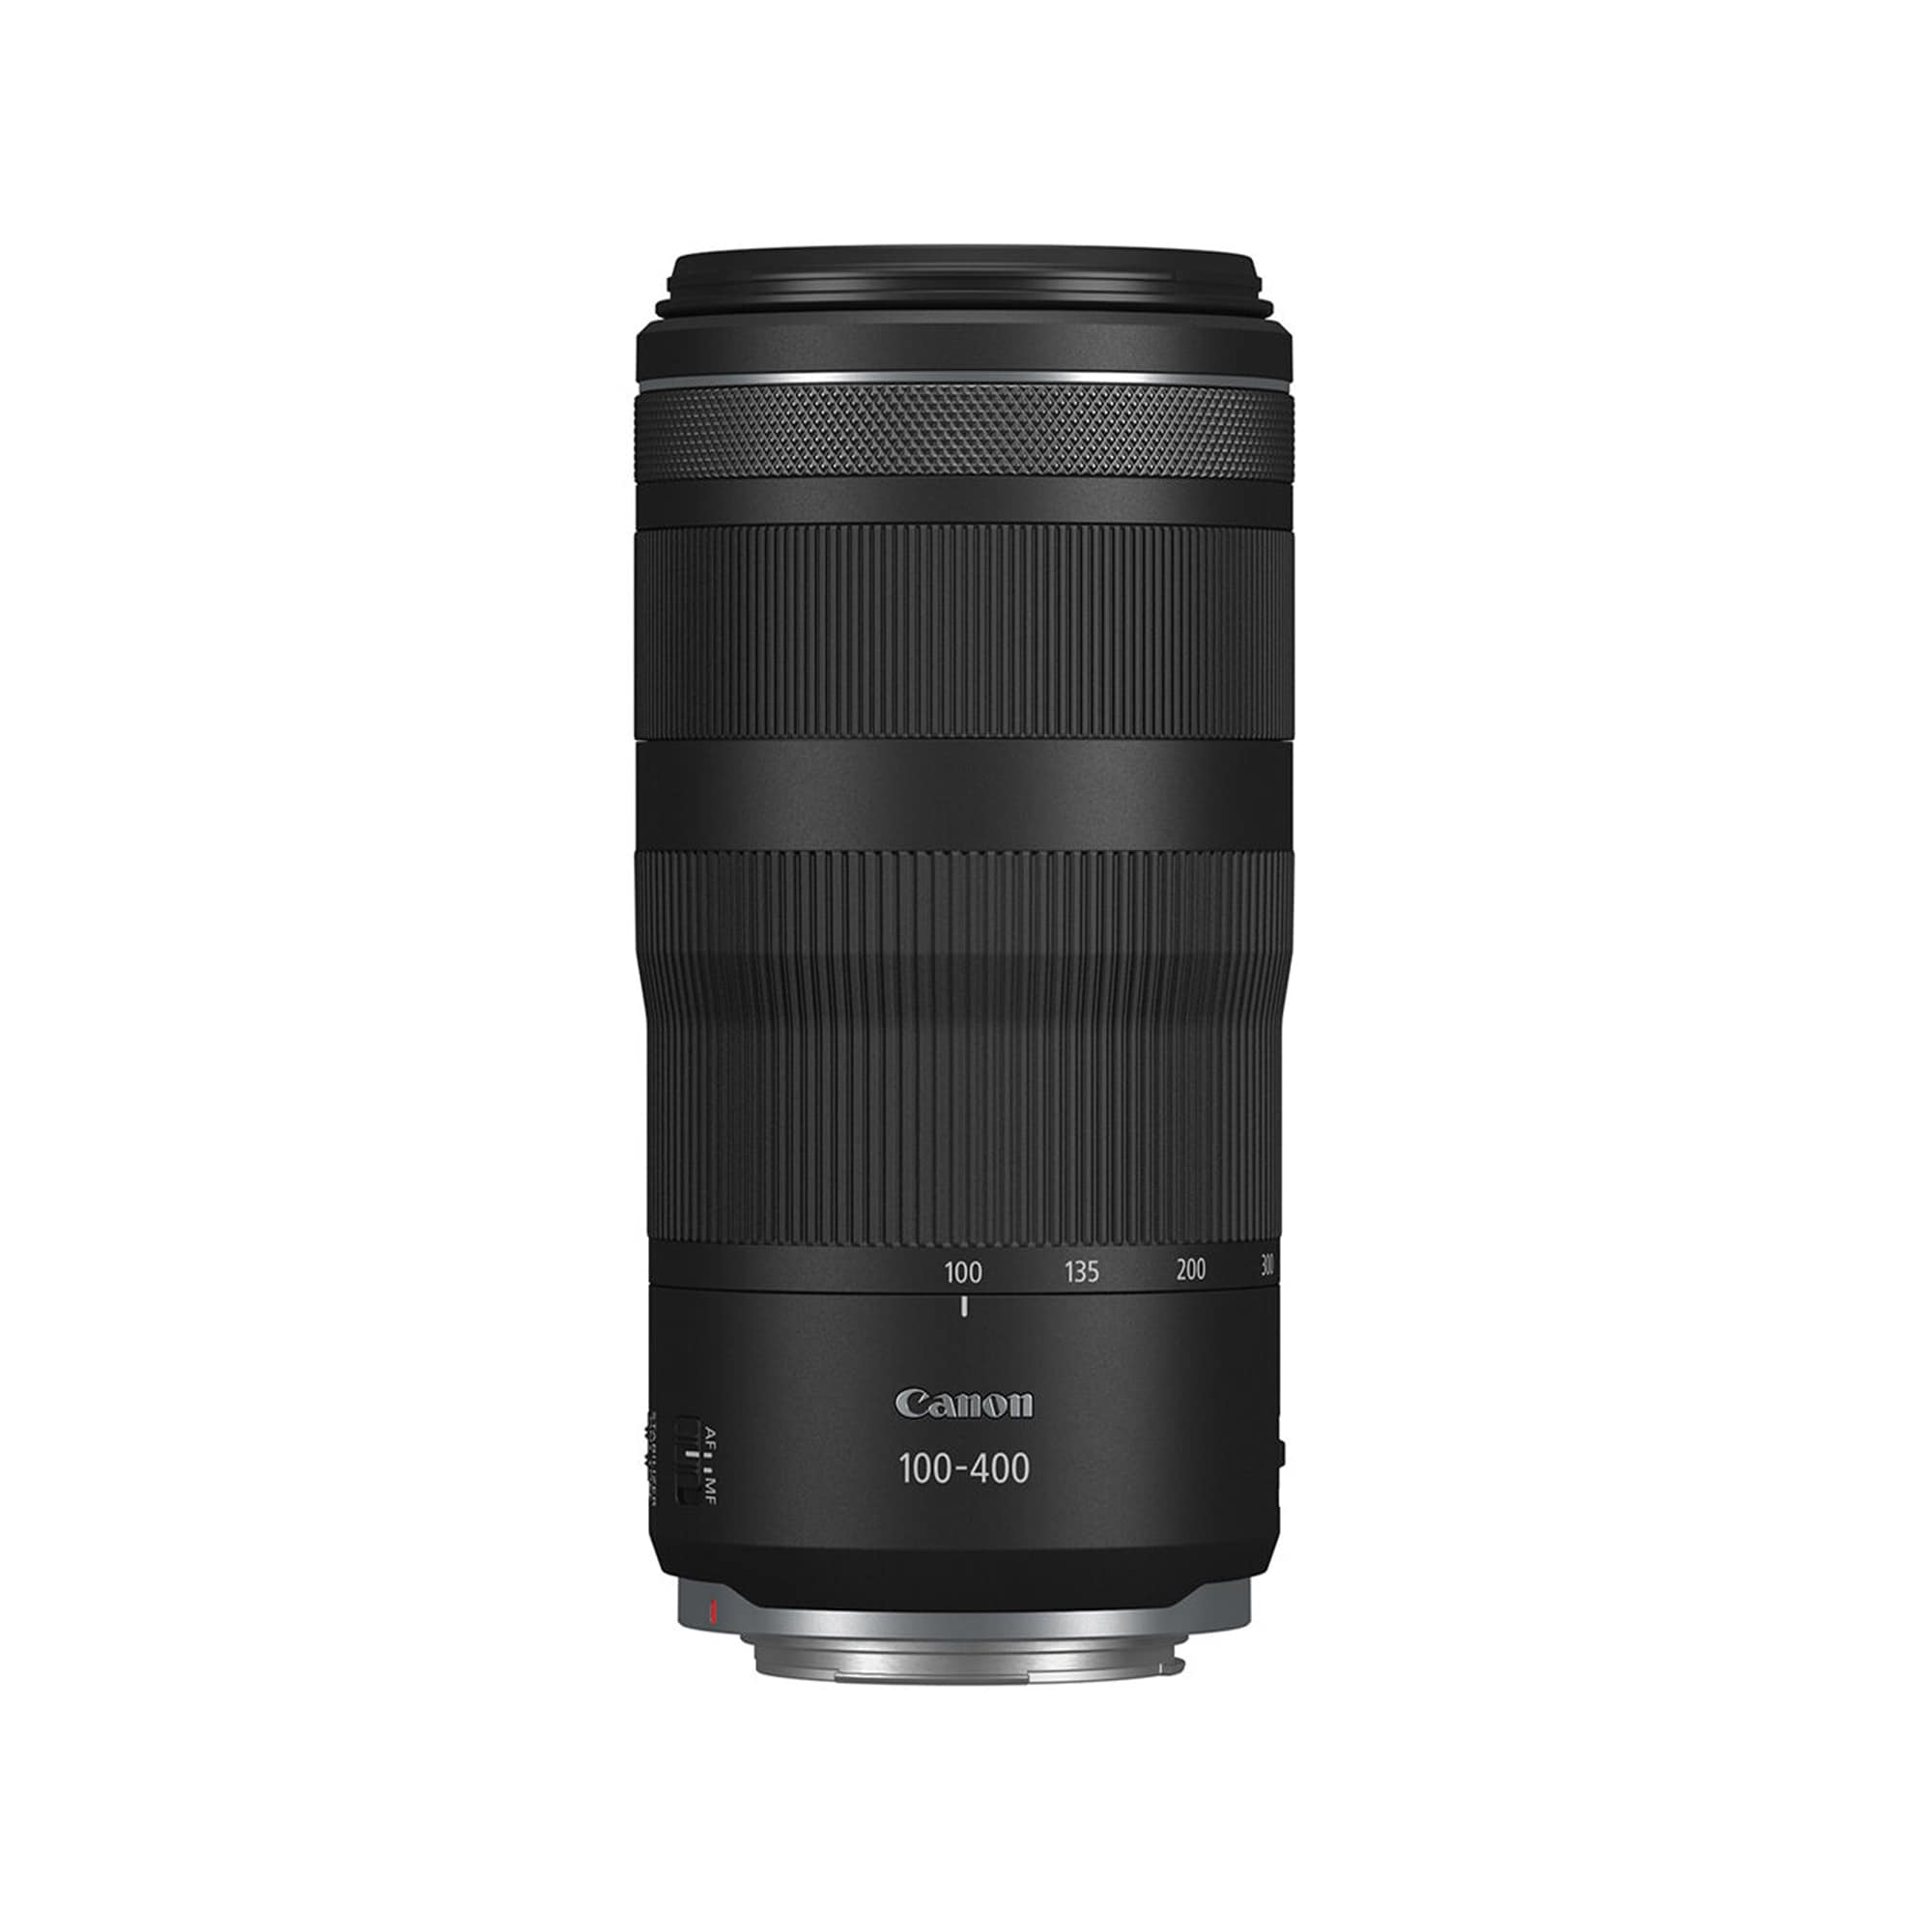 Canon RF 100-400mm f/5,6-8 IS USM